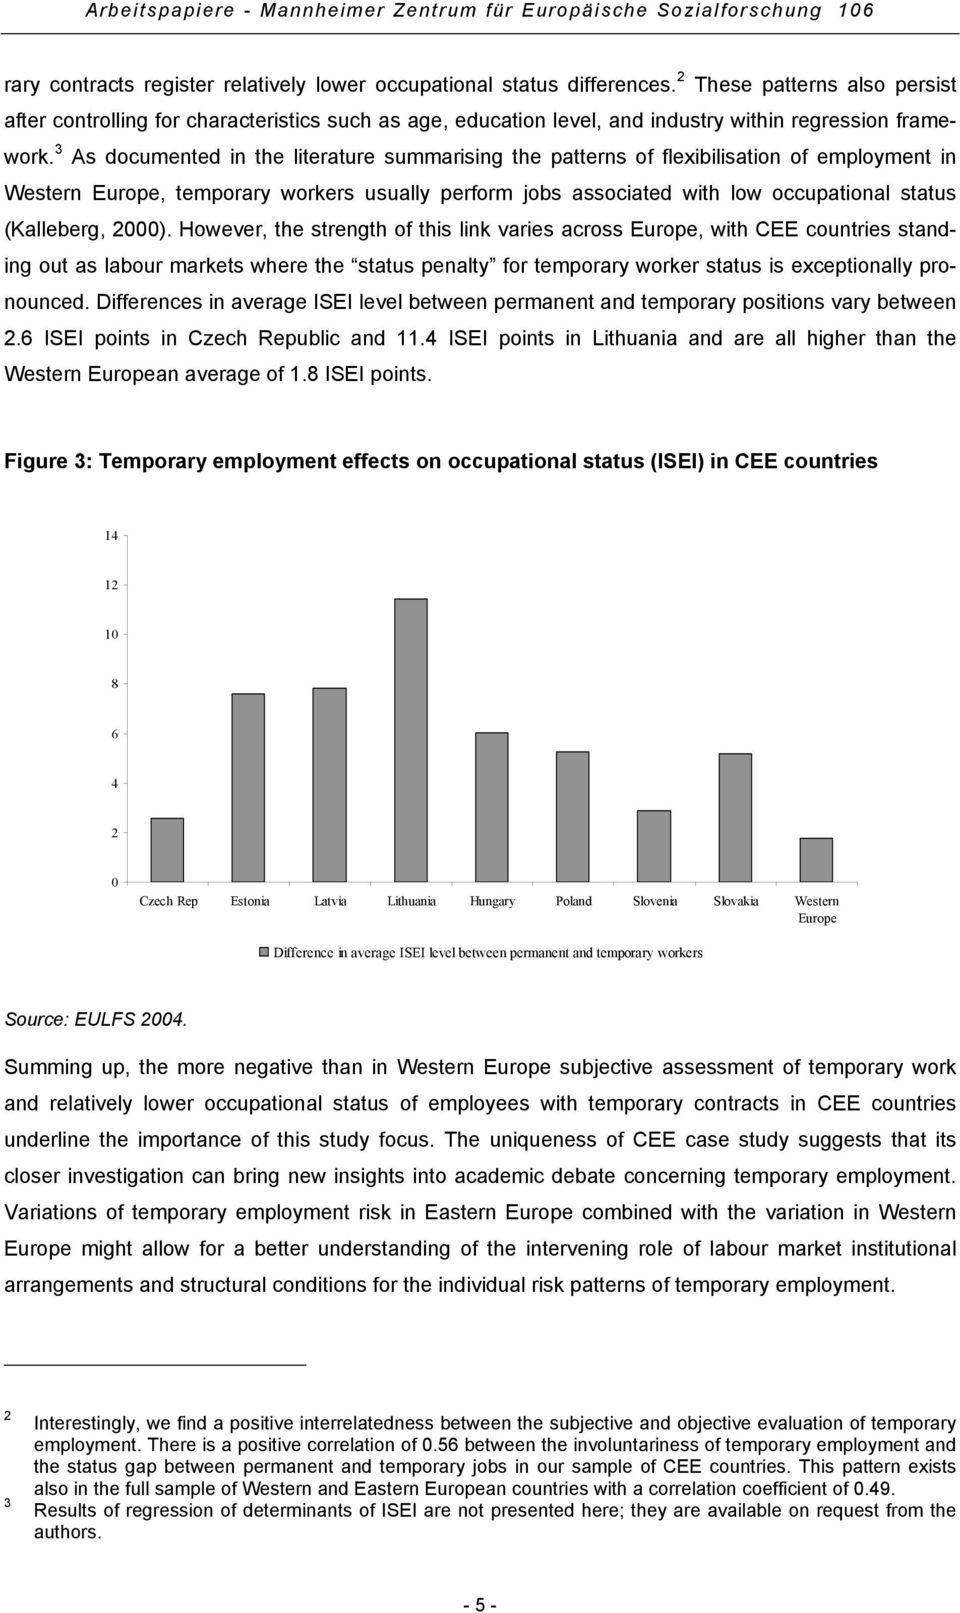 3 As documented in the literature summarising the patterns of flexibilisation of employment in Western Europe, temporary workers usually perform jobs associated with low occupational status